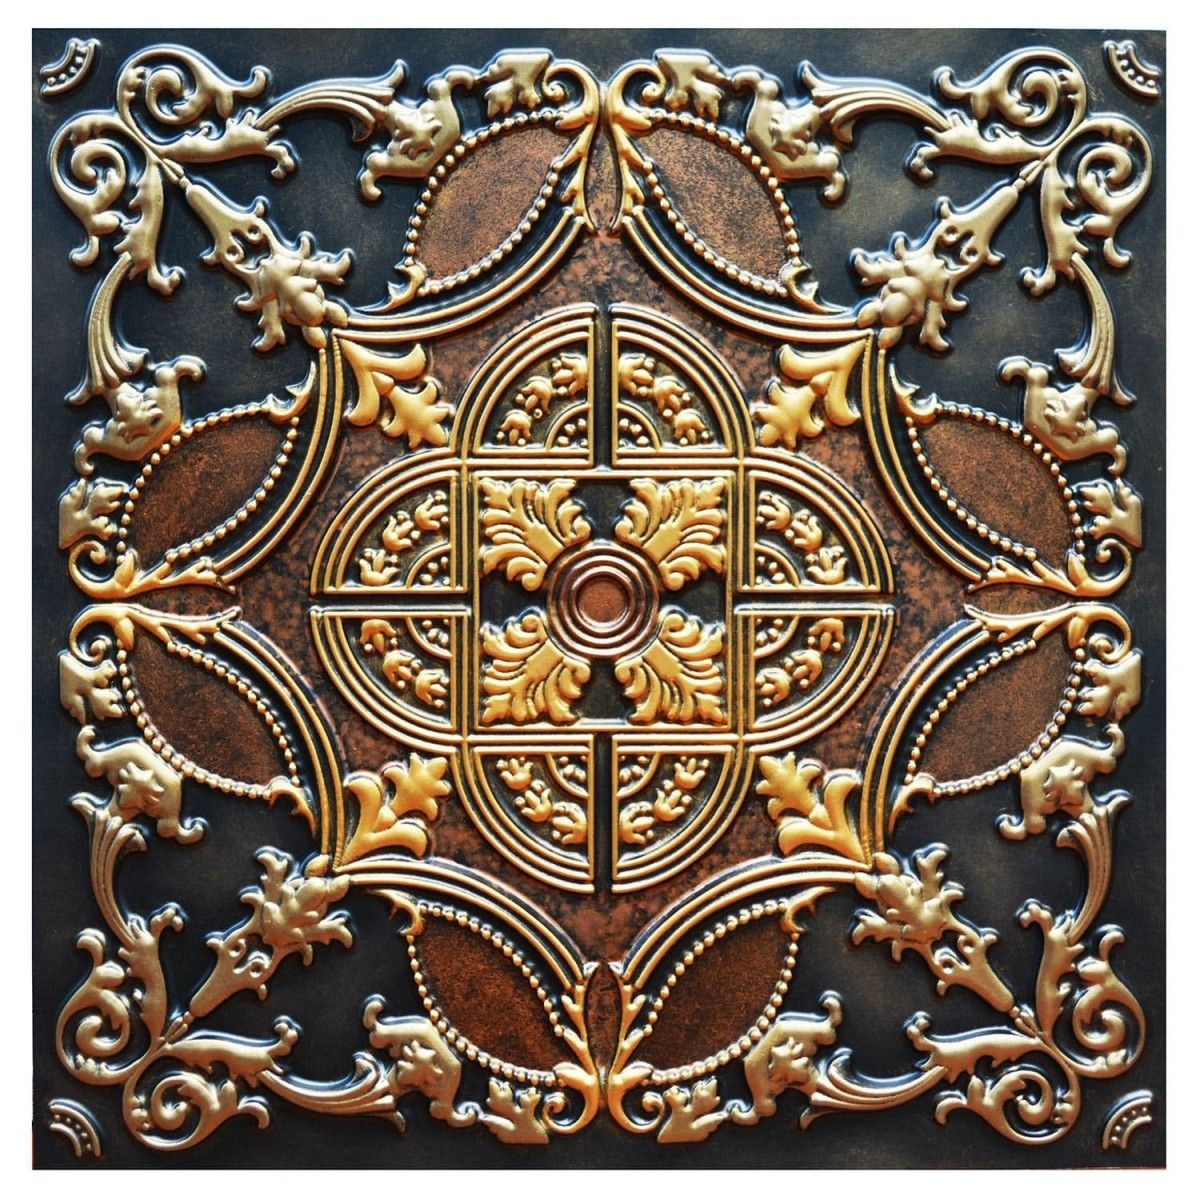 Golden prague fad hand painted ceiling tile ctf 016 paint golden prague fad hand painted ceiling tile ctf 016 dailygadgetfo Image collections